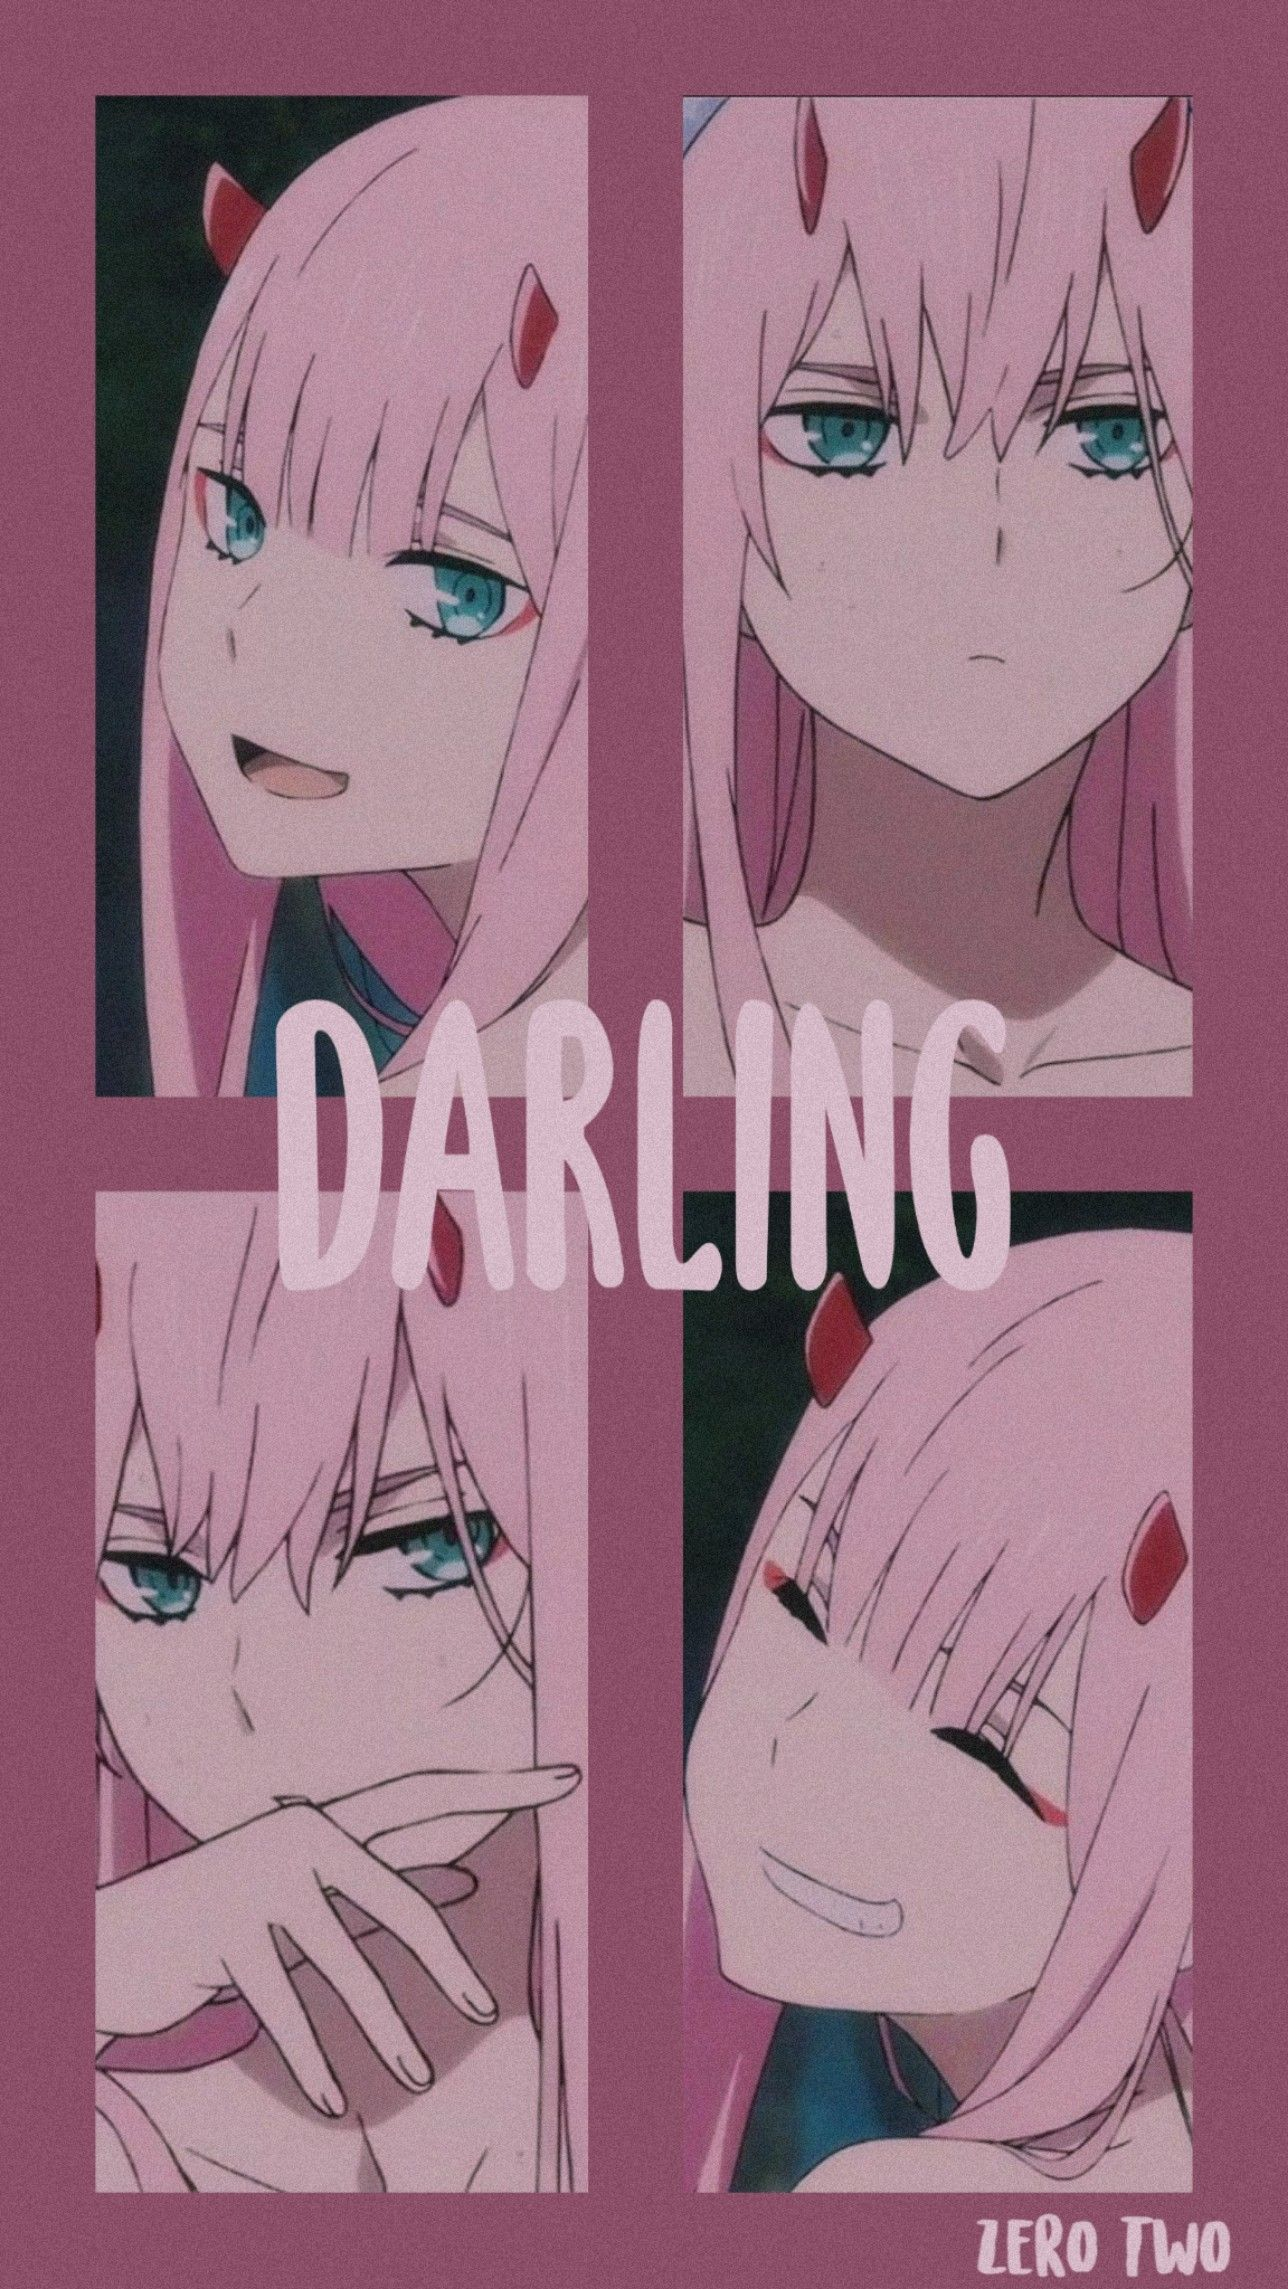 Darling In The Franxx Zero Two Wallpaper Em 2020 Animes Wallpapers Personagens De Anime Wallpapers Bonitos